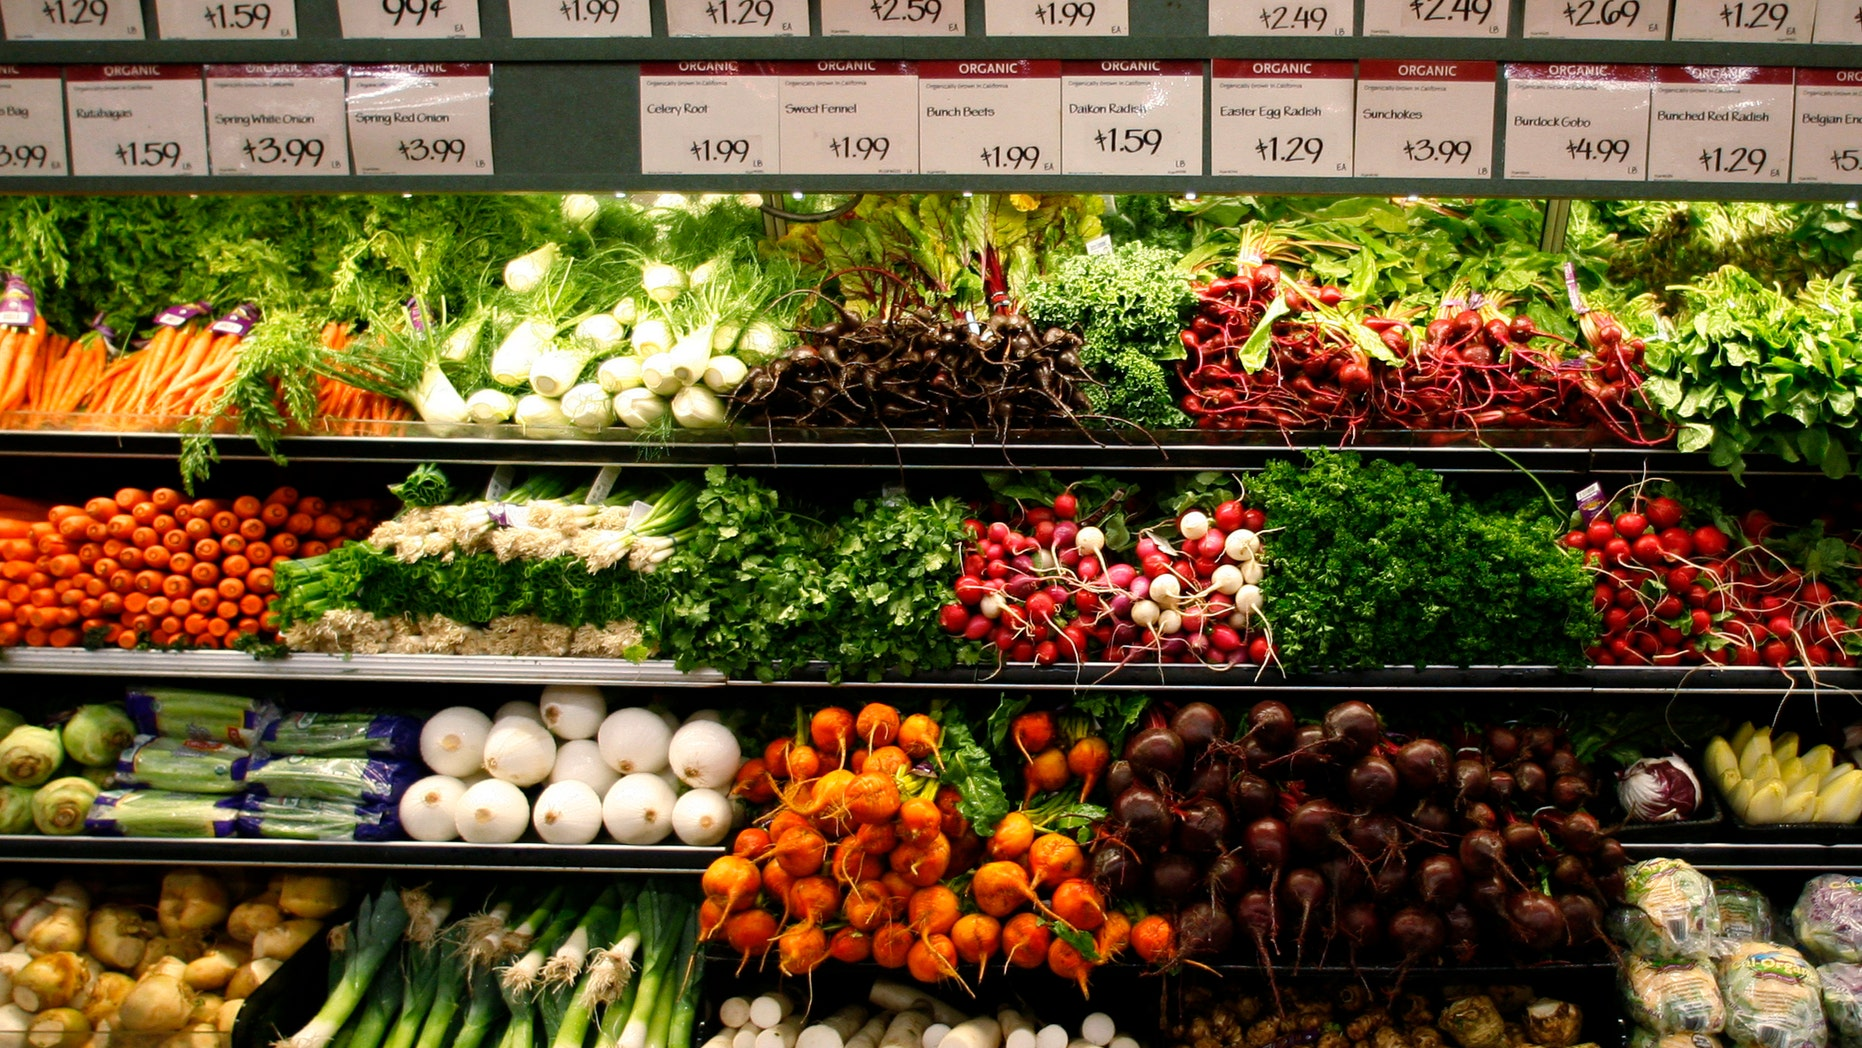 Organic vegetables are shown at a  Whole Foods Market  in LaJolla, California. (REUTERS/Mike Blake/Files)